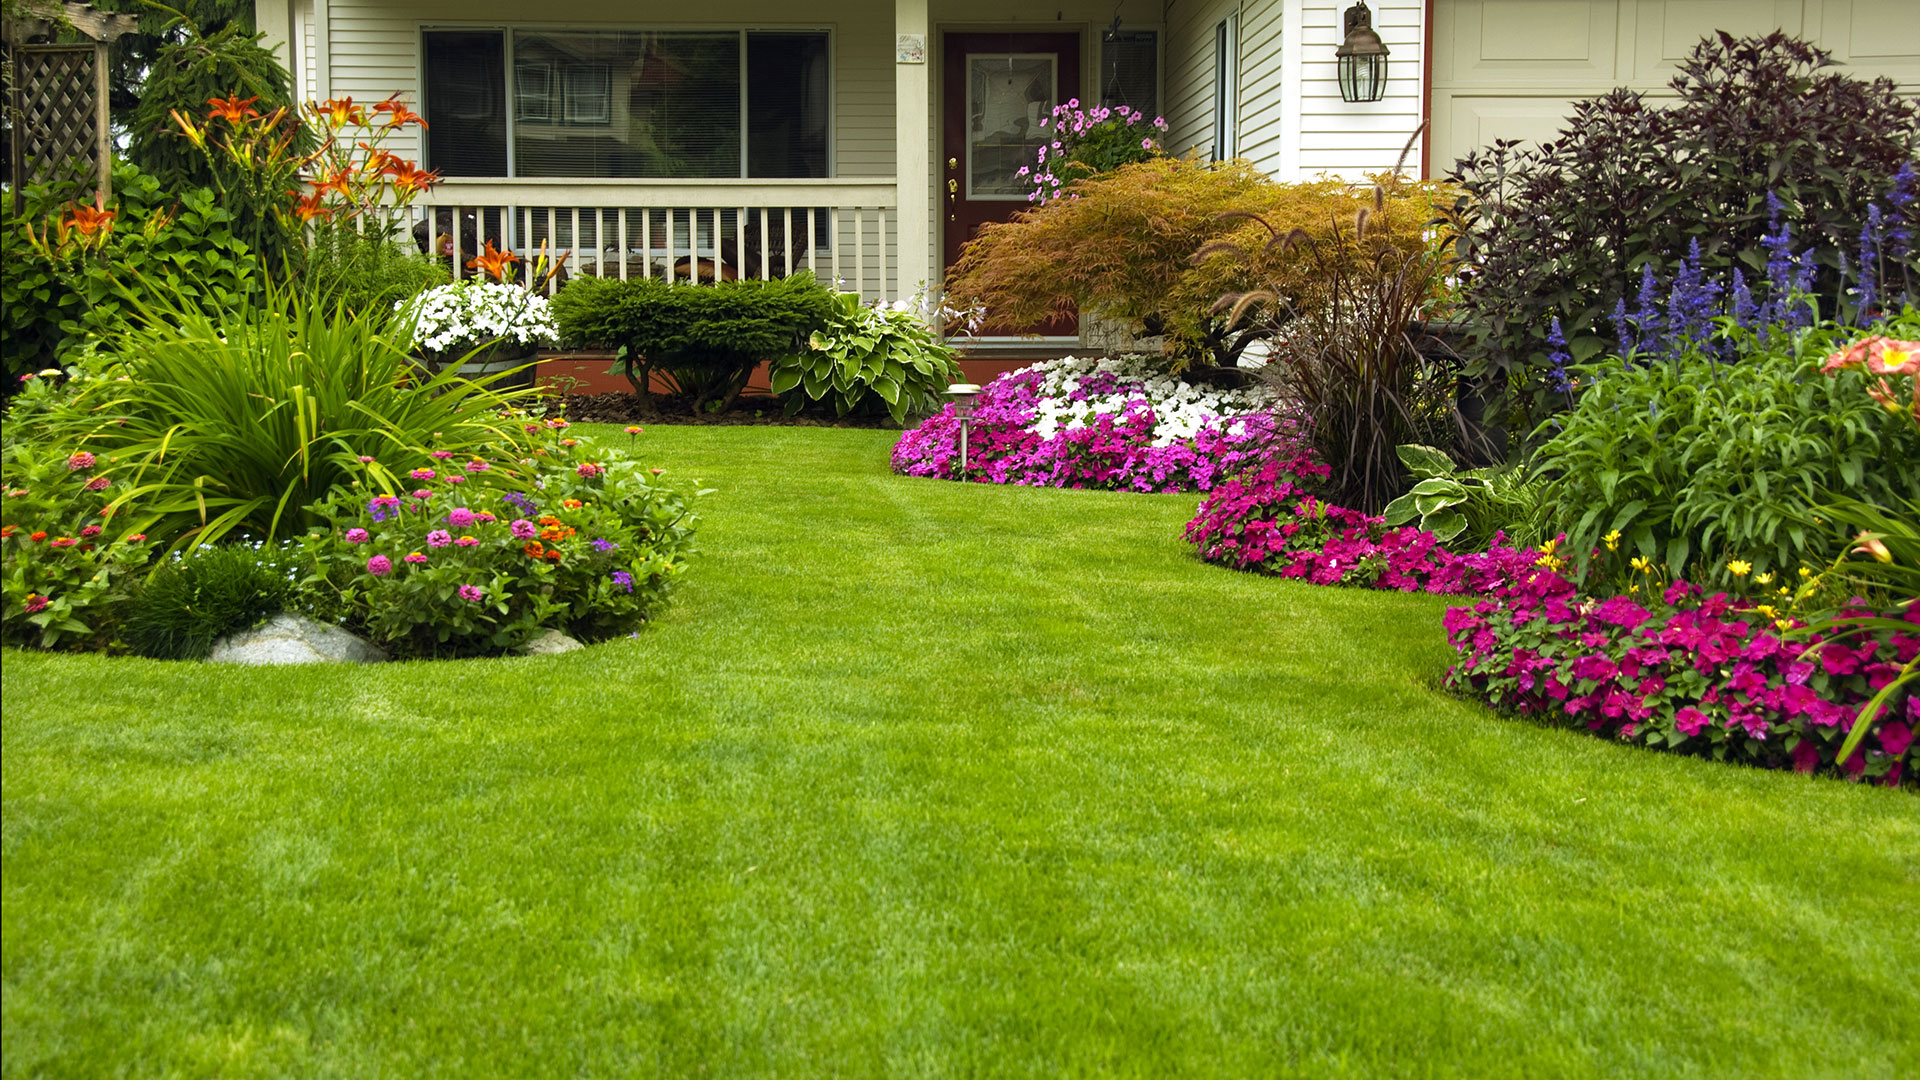 Beautify Your Garden with Garden Edging Ideas